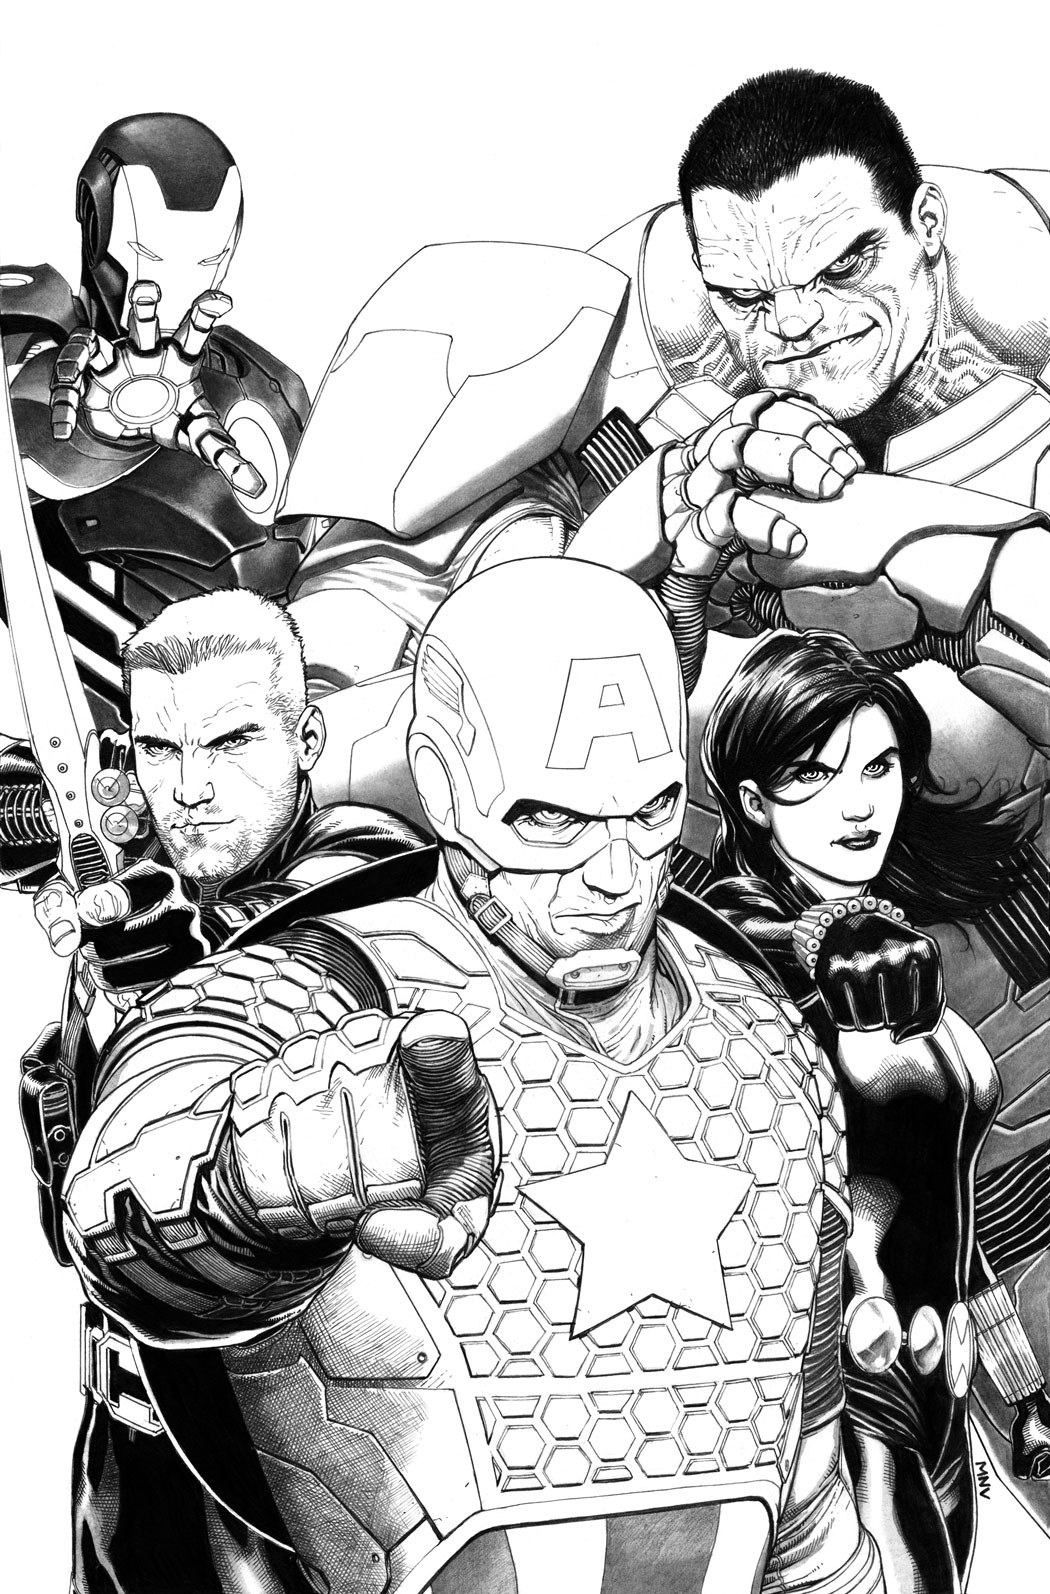 AVENGERS #1 MCNIVEN SKETCH VAR NOW